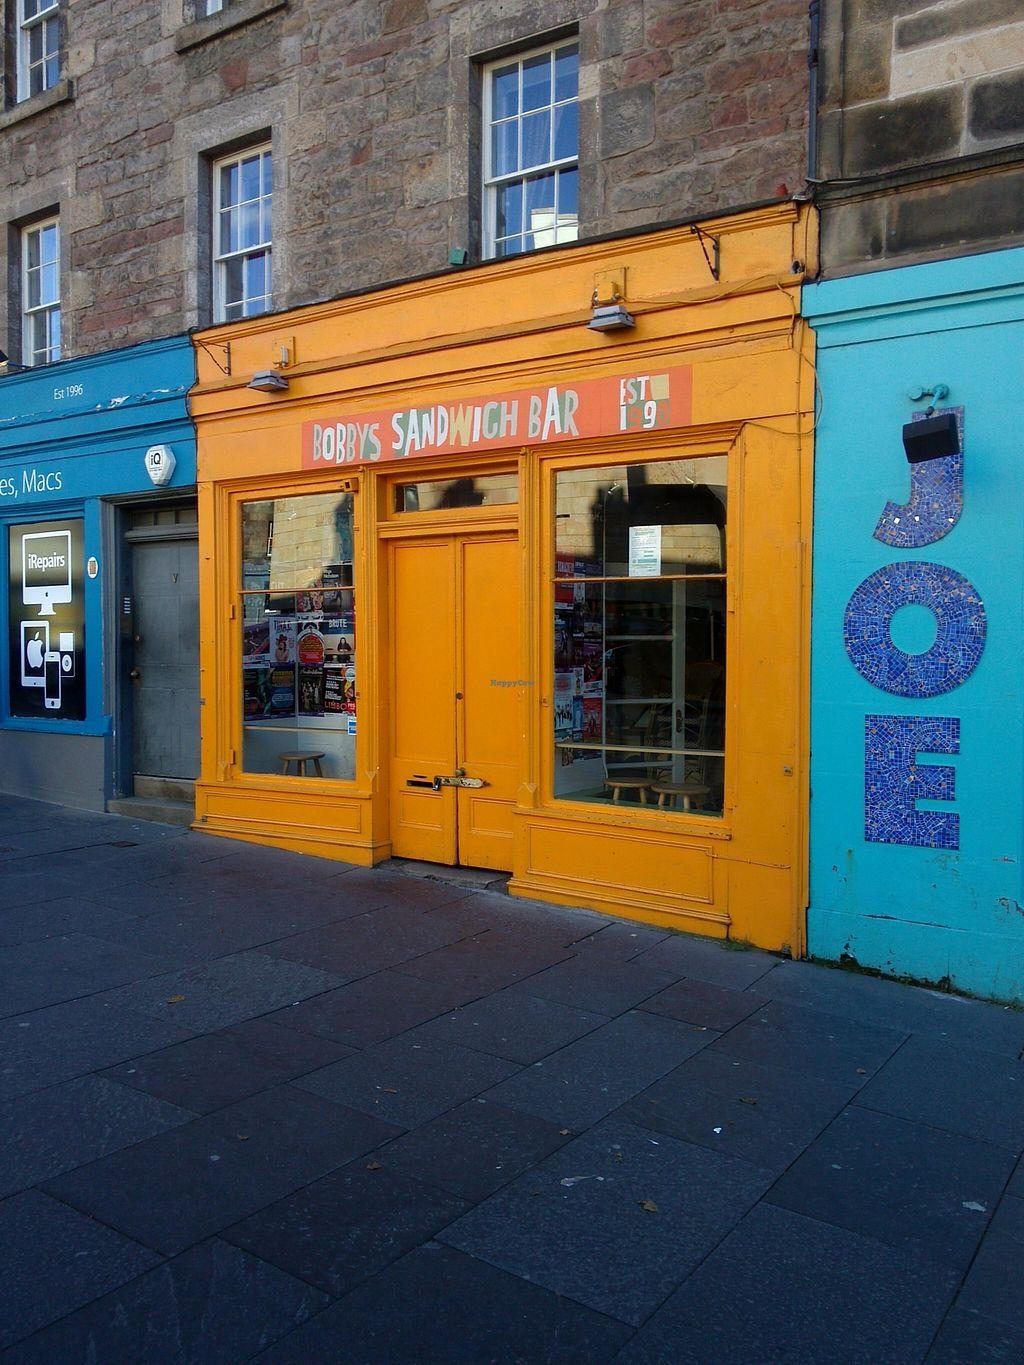 """Photo of Bobby's Sandwich Bar  by <a href=""""/members/profile/Ryecatcher"""">Ryecatcher</a> <br/>From outside <br/> September 17, 2015  - <a href='/contact/abuse/image/63522/118100'>Report</a>"""